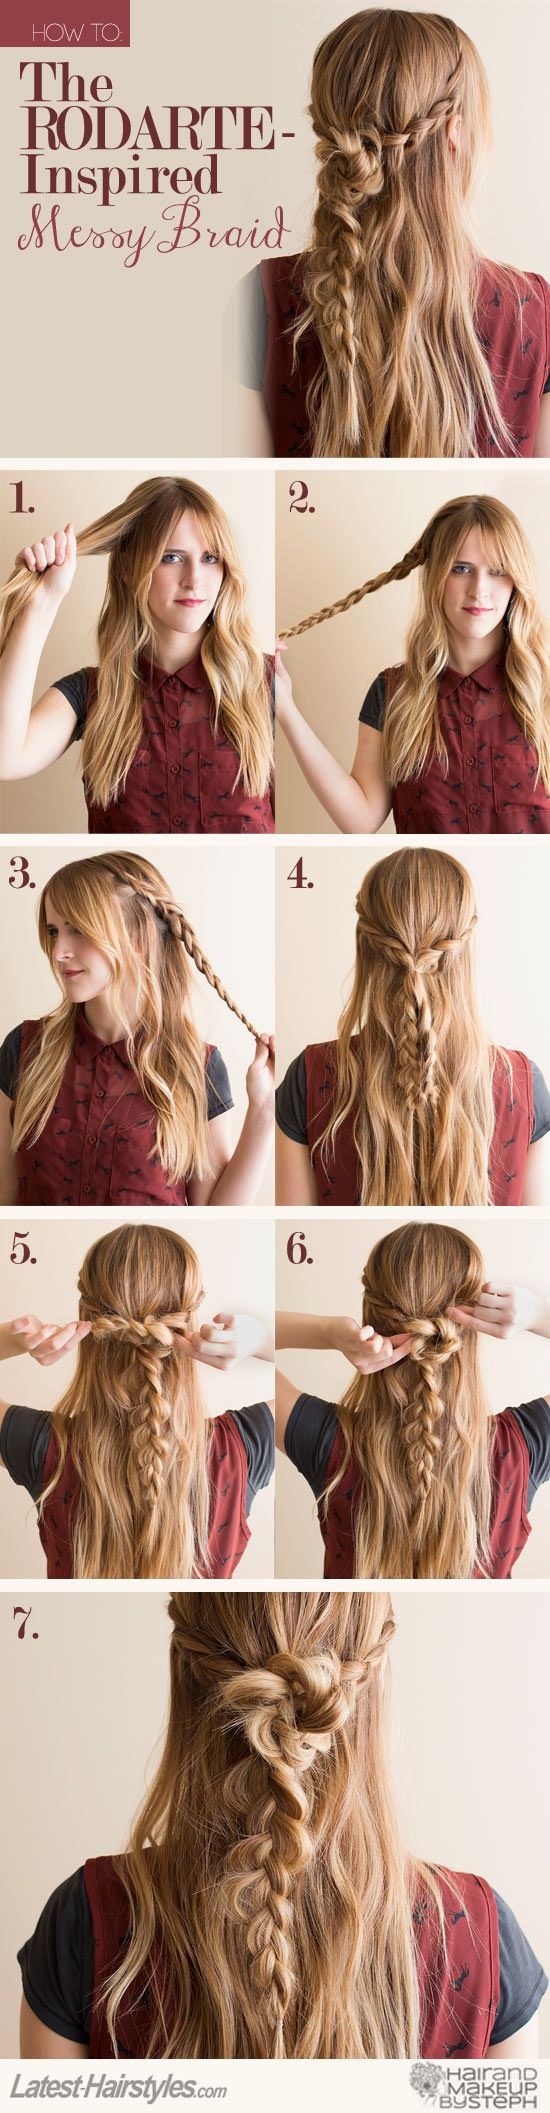 Braid hairstyles search glamourcom - Messy Braid Tutorial